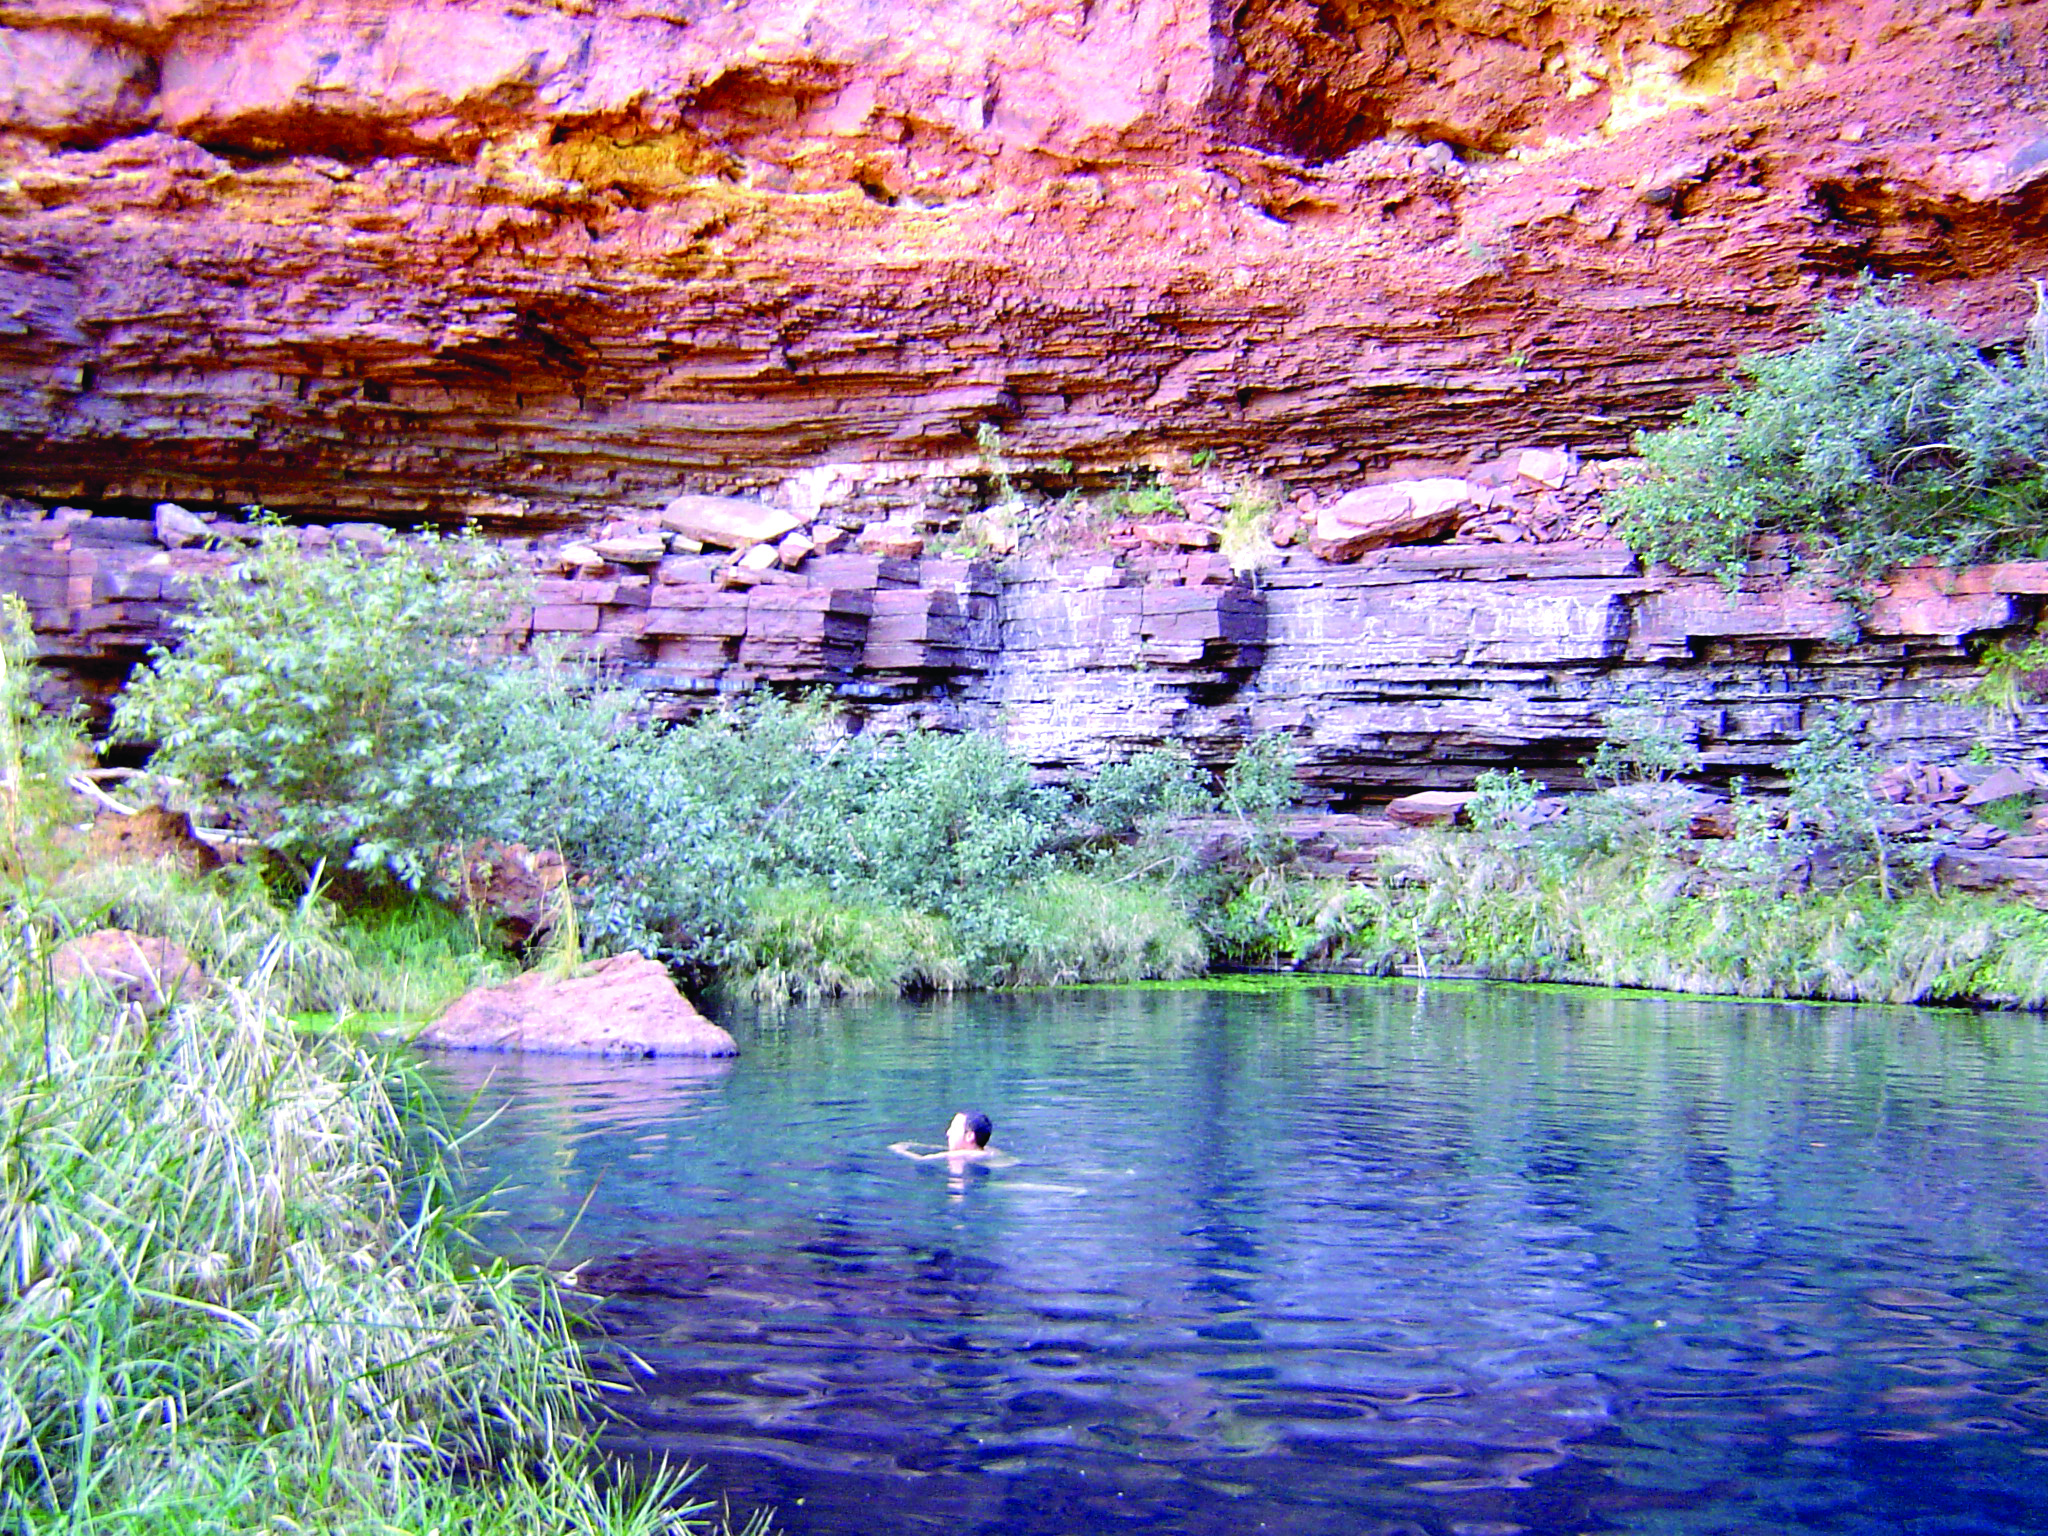 15 Day Pilbara, Marble Bar, Millstream, Karijini, Coral Bay & Shark Bay